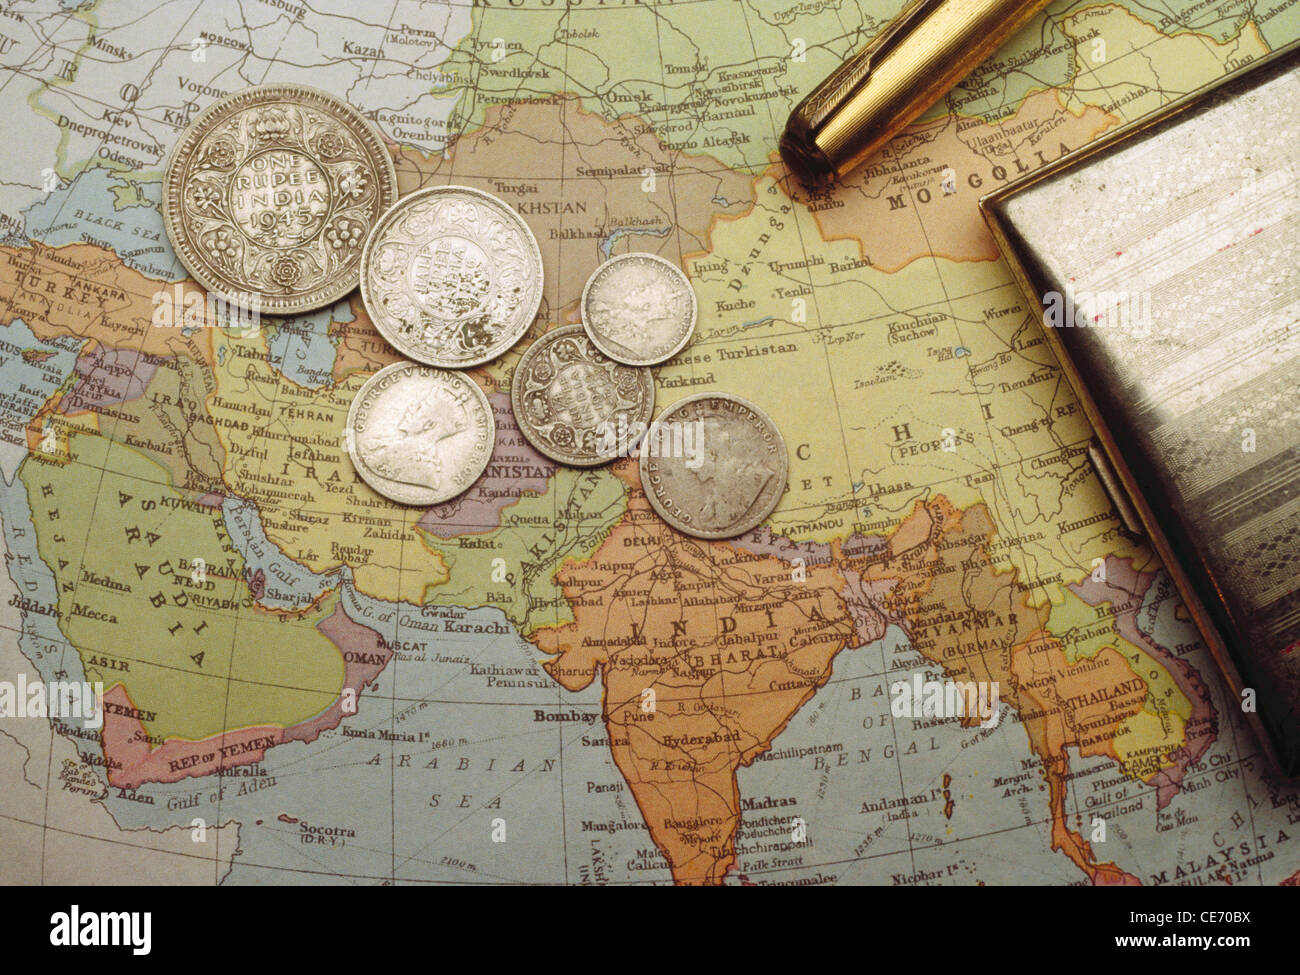 Historical map india stock photos historical map india stock rhs 83933 old indian coins 1936 to 1942 period money map of india stock gumiabroncs